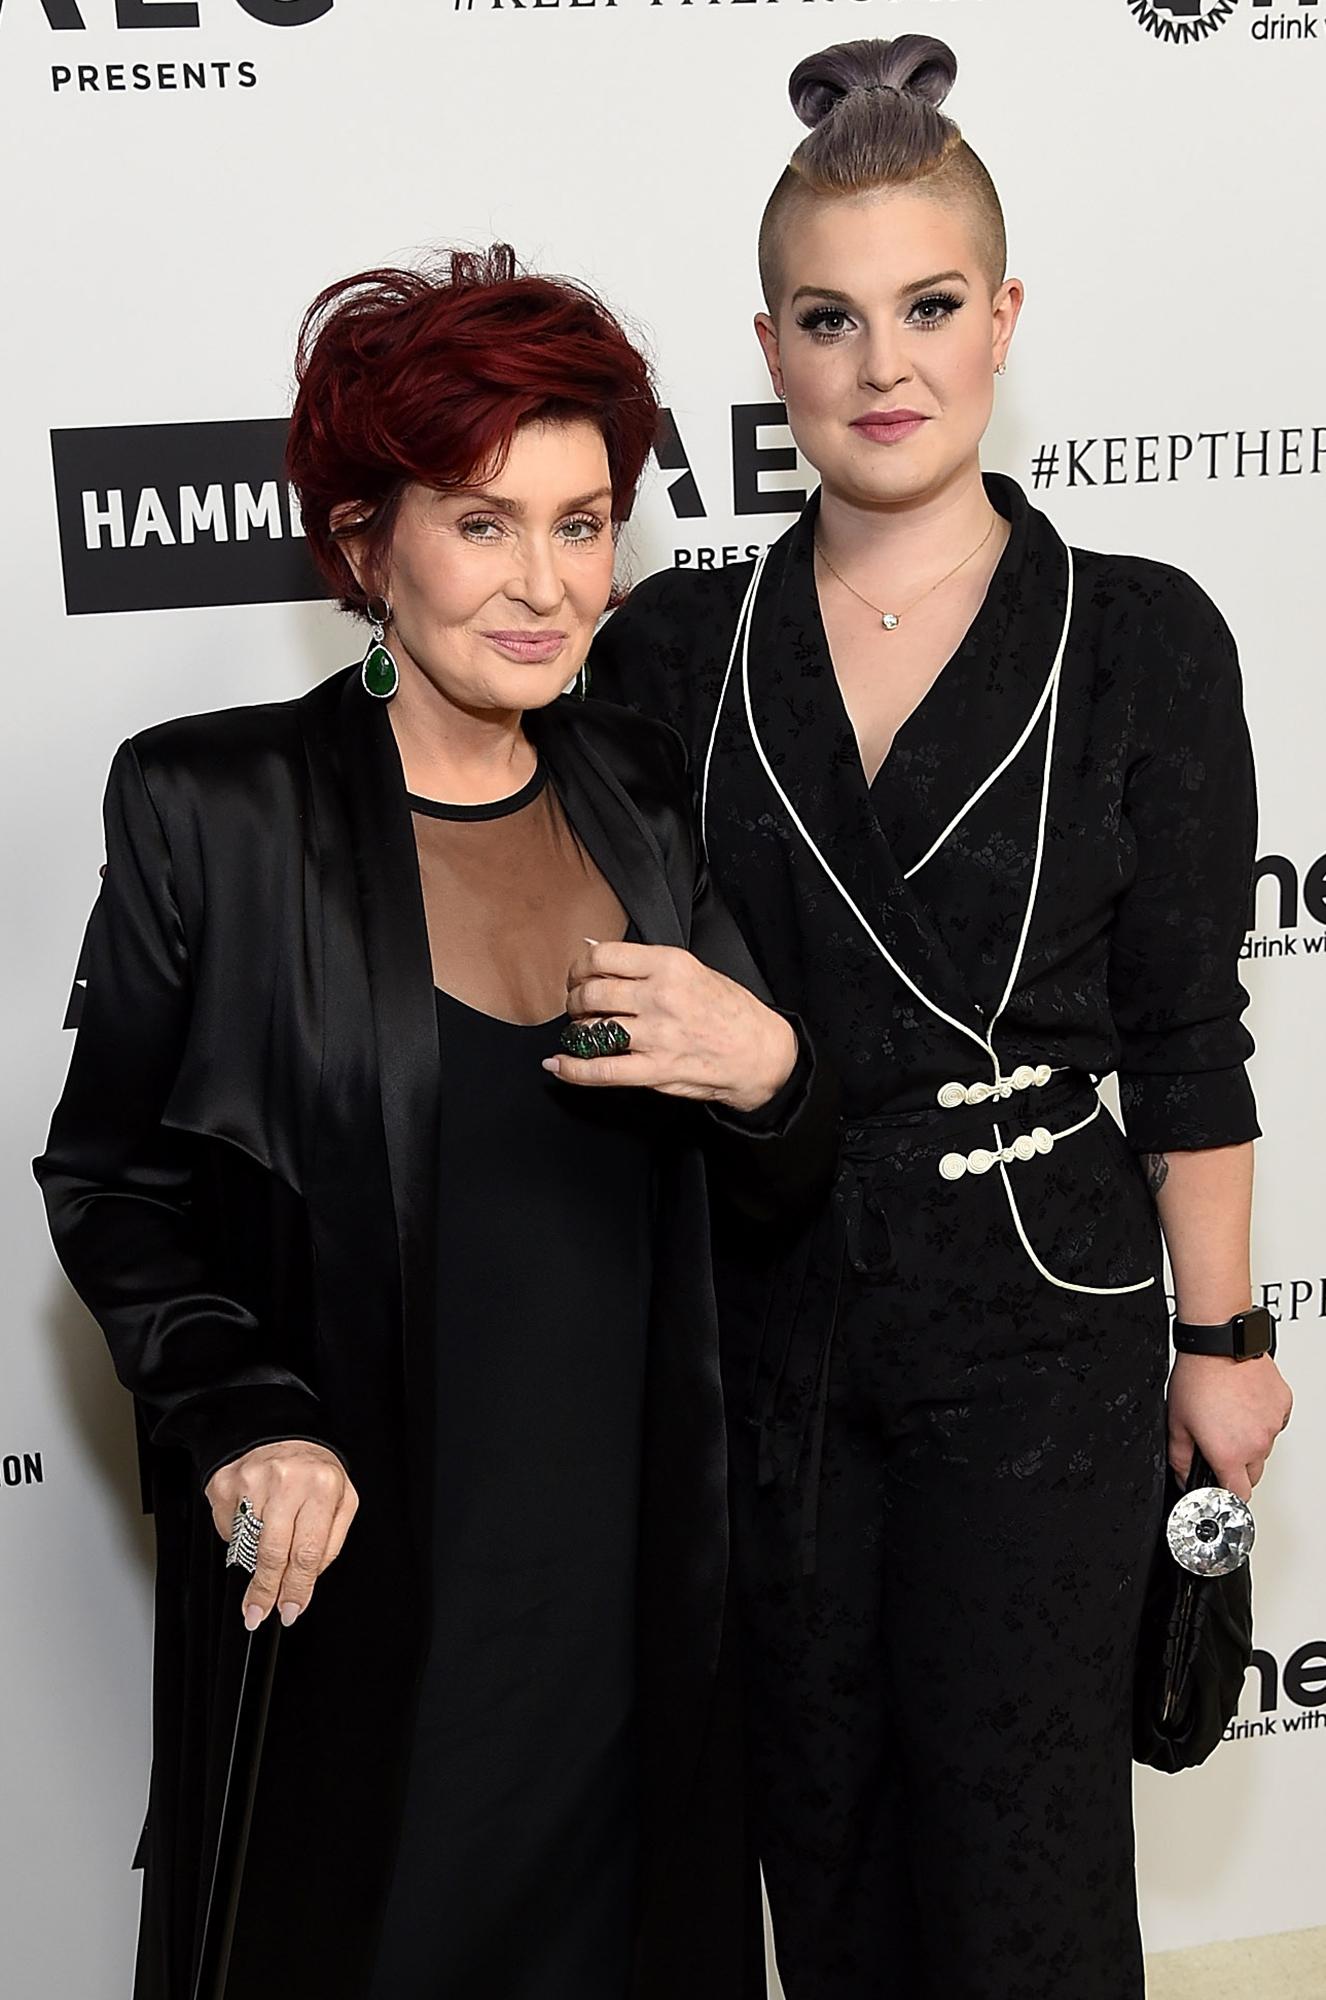 Famous Mother-Daughter Pairs - This mother-daughter pair won an Emmy in 2002 for their family's reality show, The Osbournes . They've both gone on to have thriving careers in television.